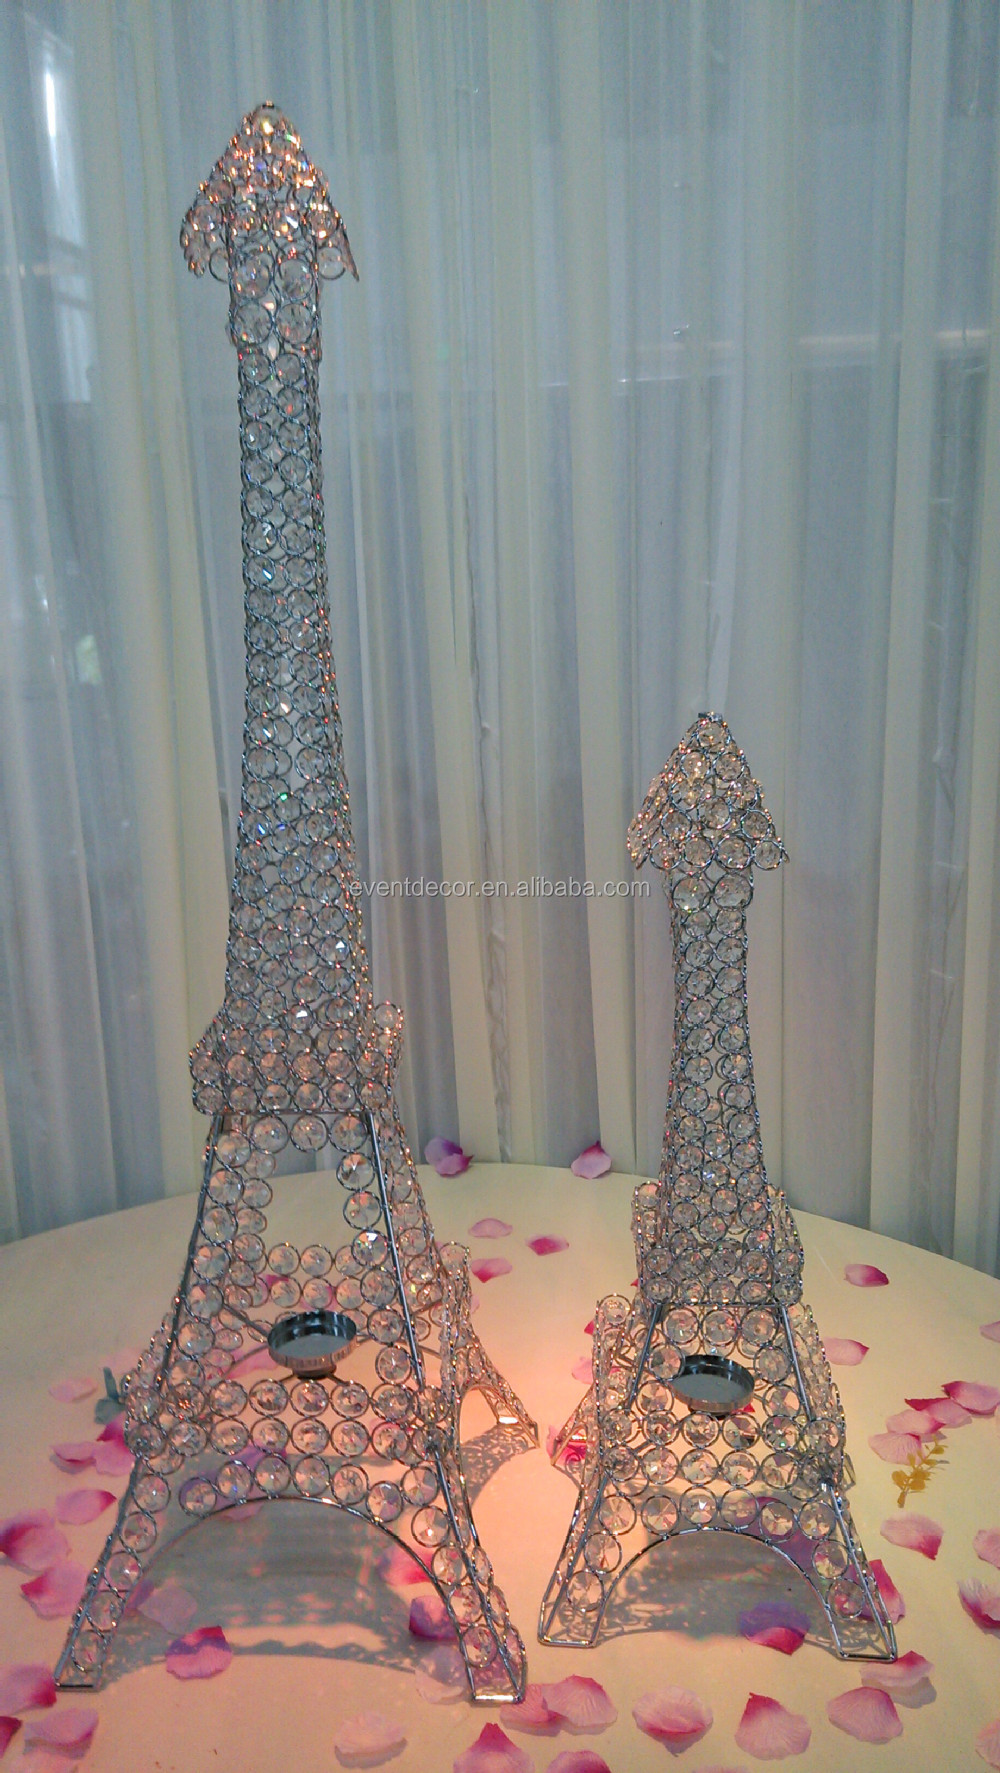 New Product  Eiffel Tower Centerpieces for Wedding Table